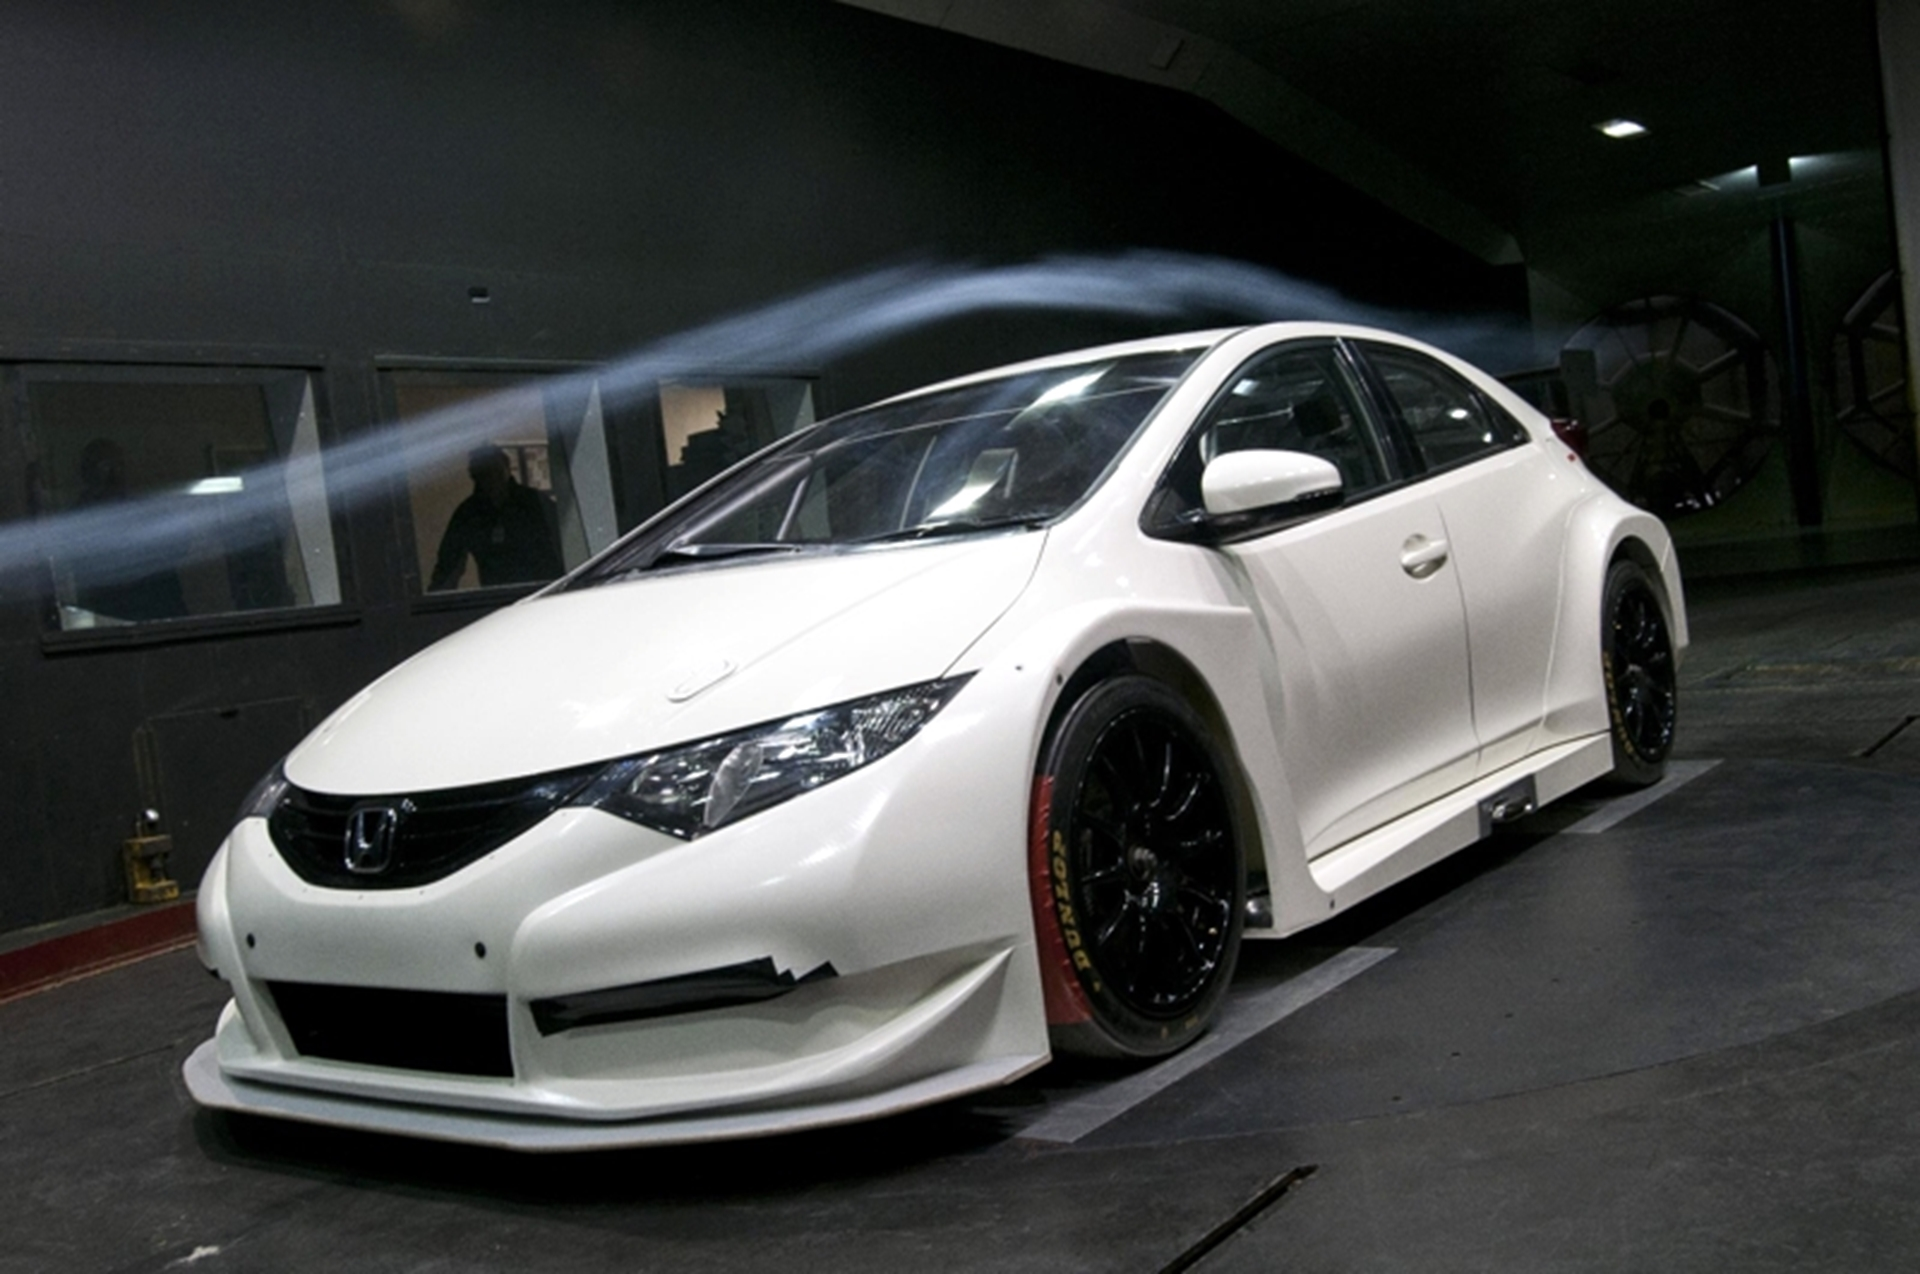 New Civic NGTC